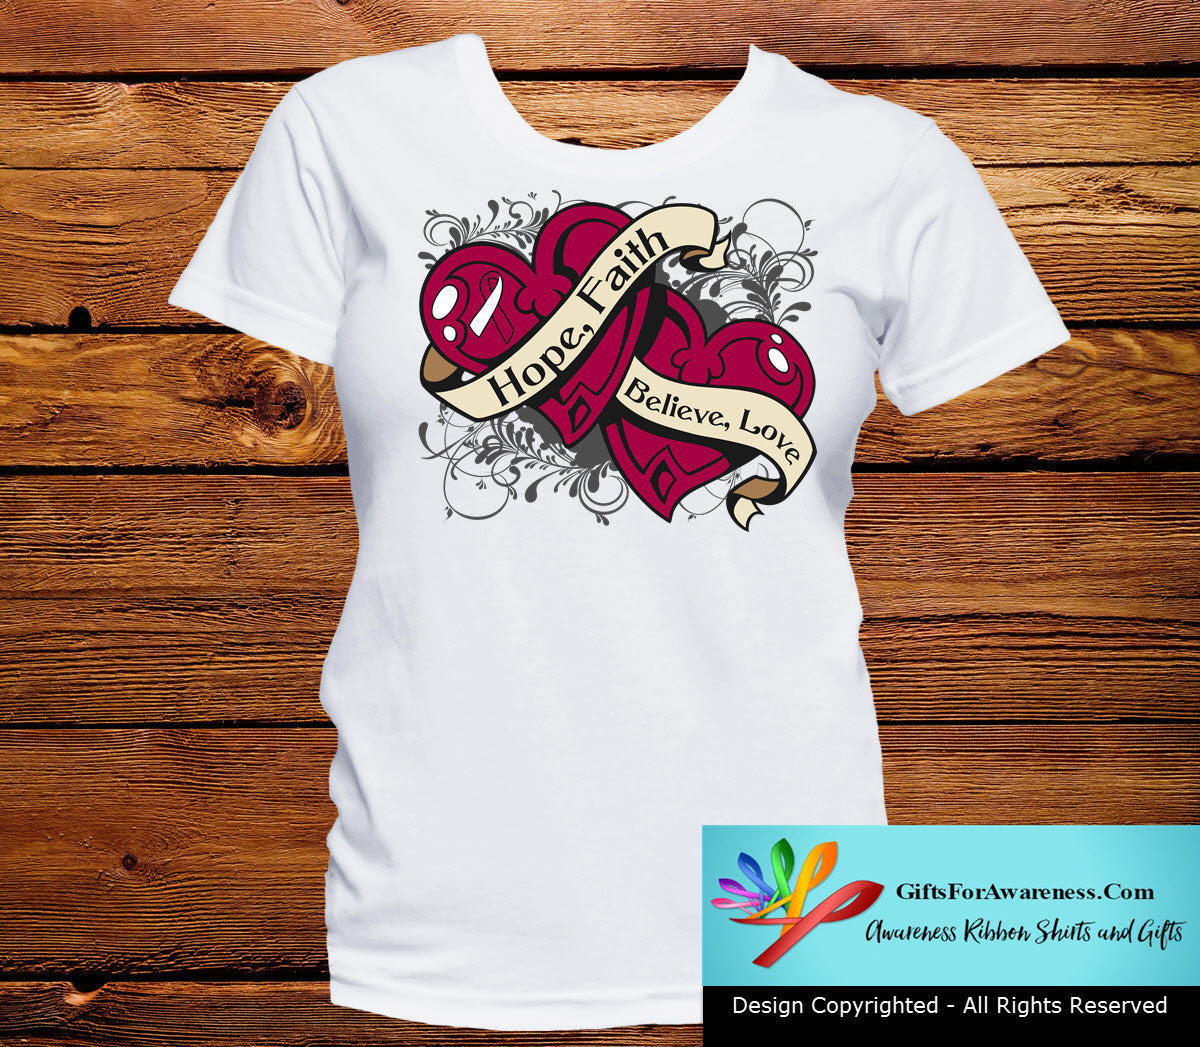 Head Neck Cancer Hope Believe Faith Love Shirts - GiftsForAwareness